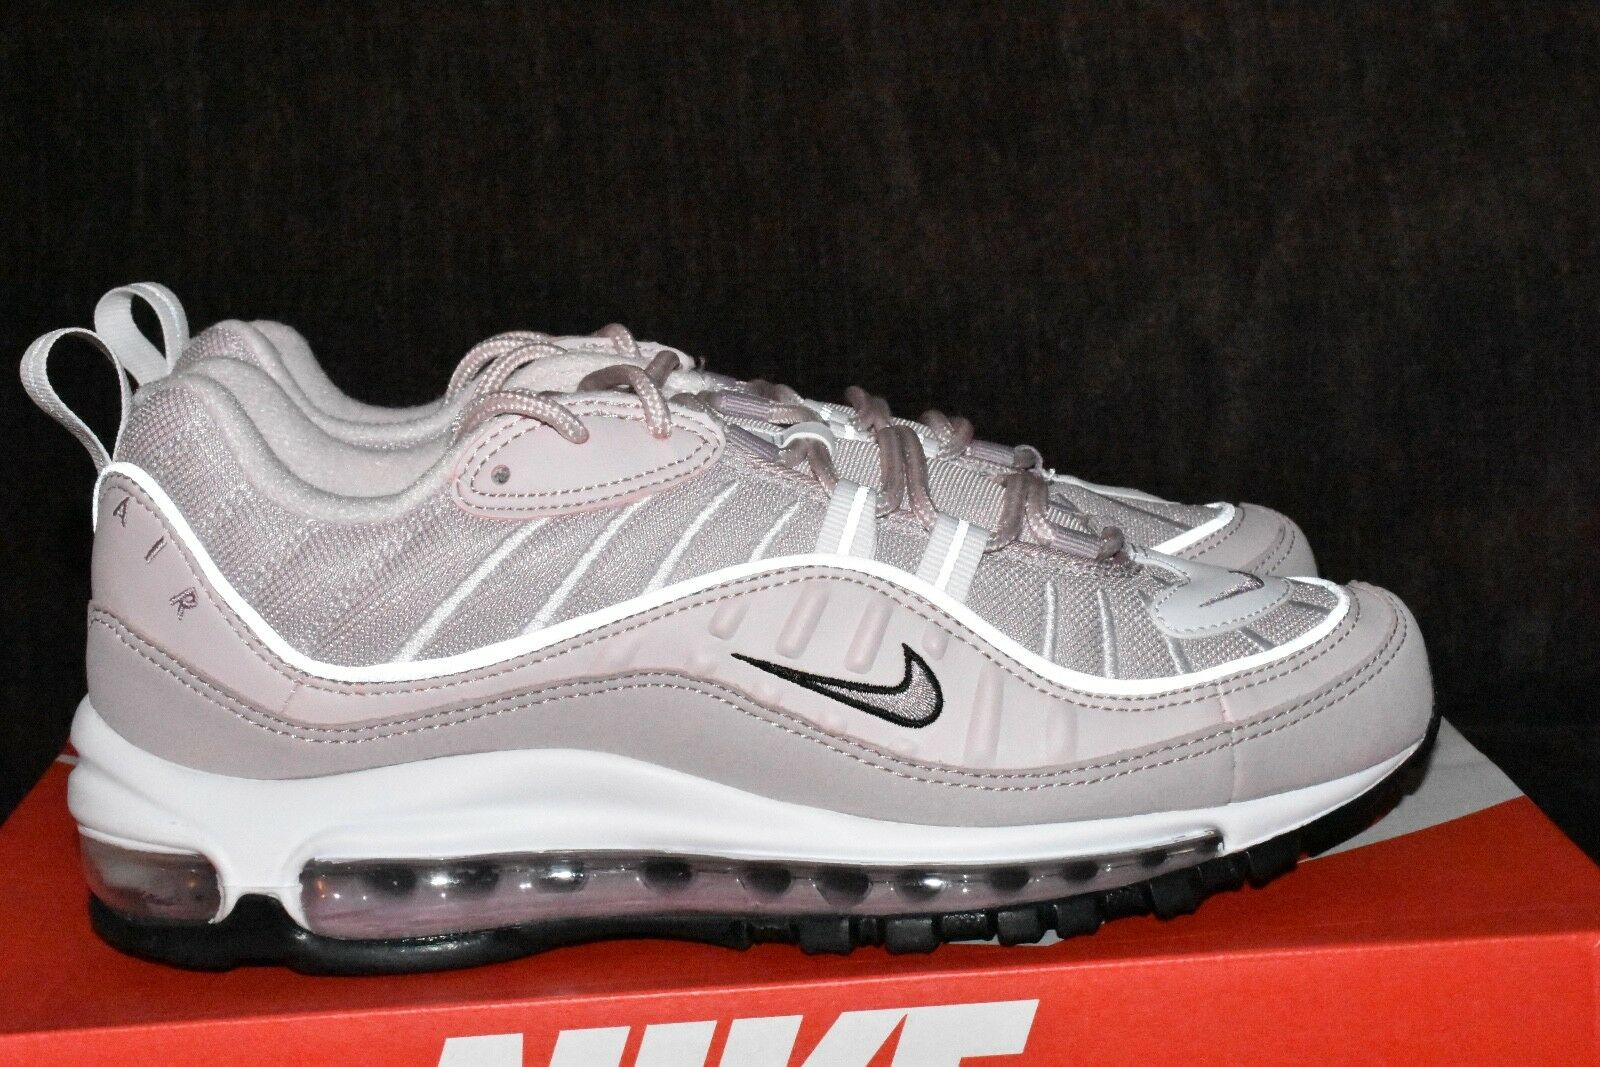 NIKE AIR MAX 98 SZ 8.5 ah6799 600 barely barely barely rose